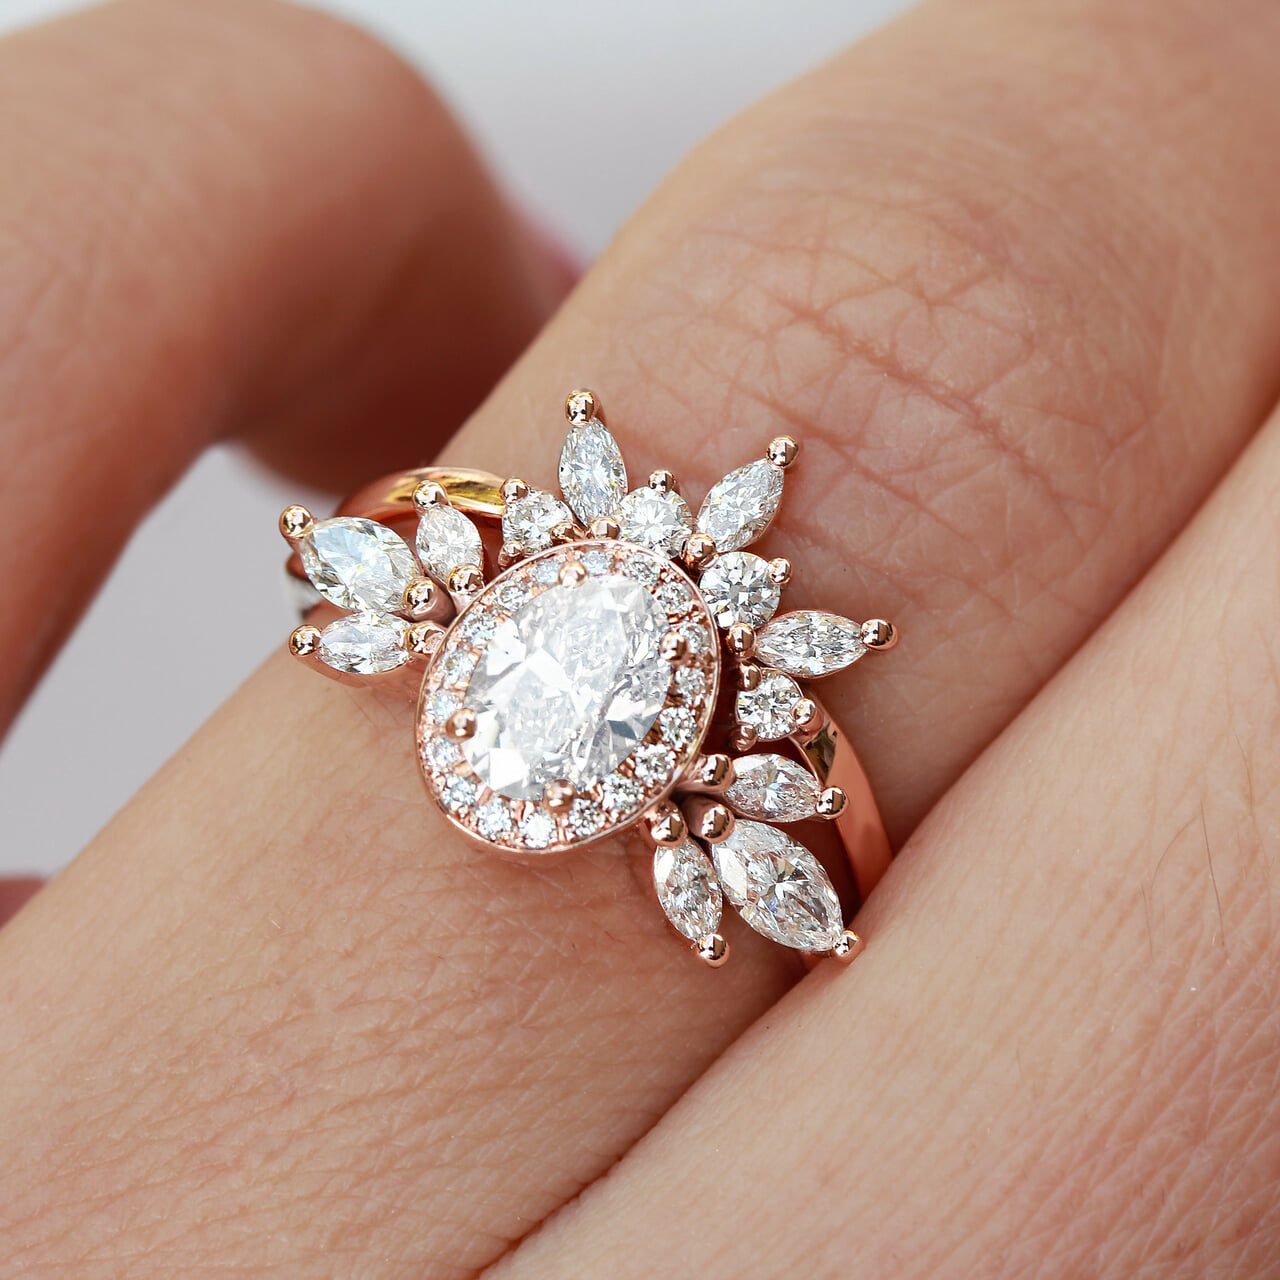 etsy, crown ring, and yellow gold ring image